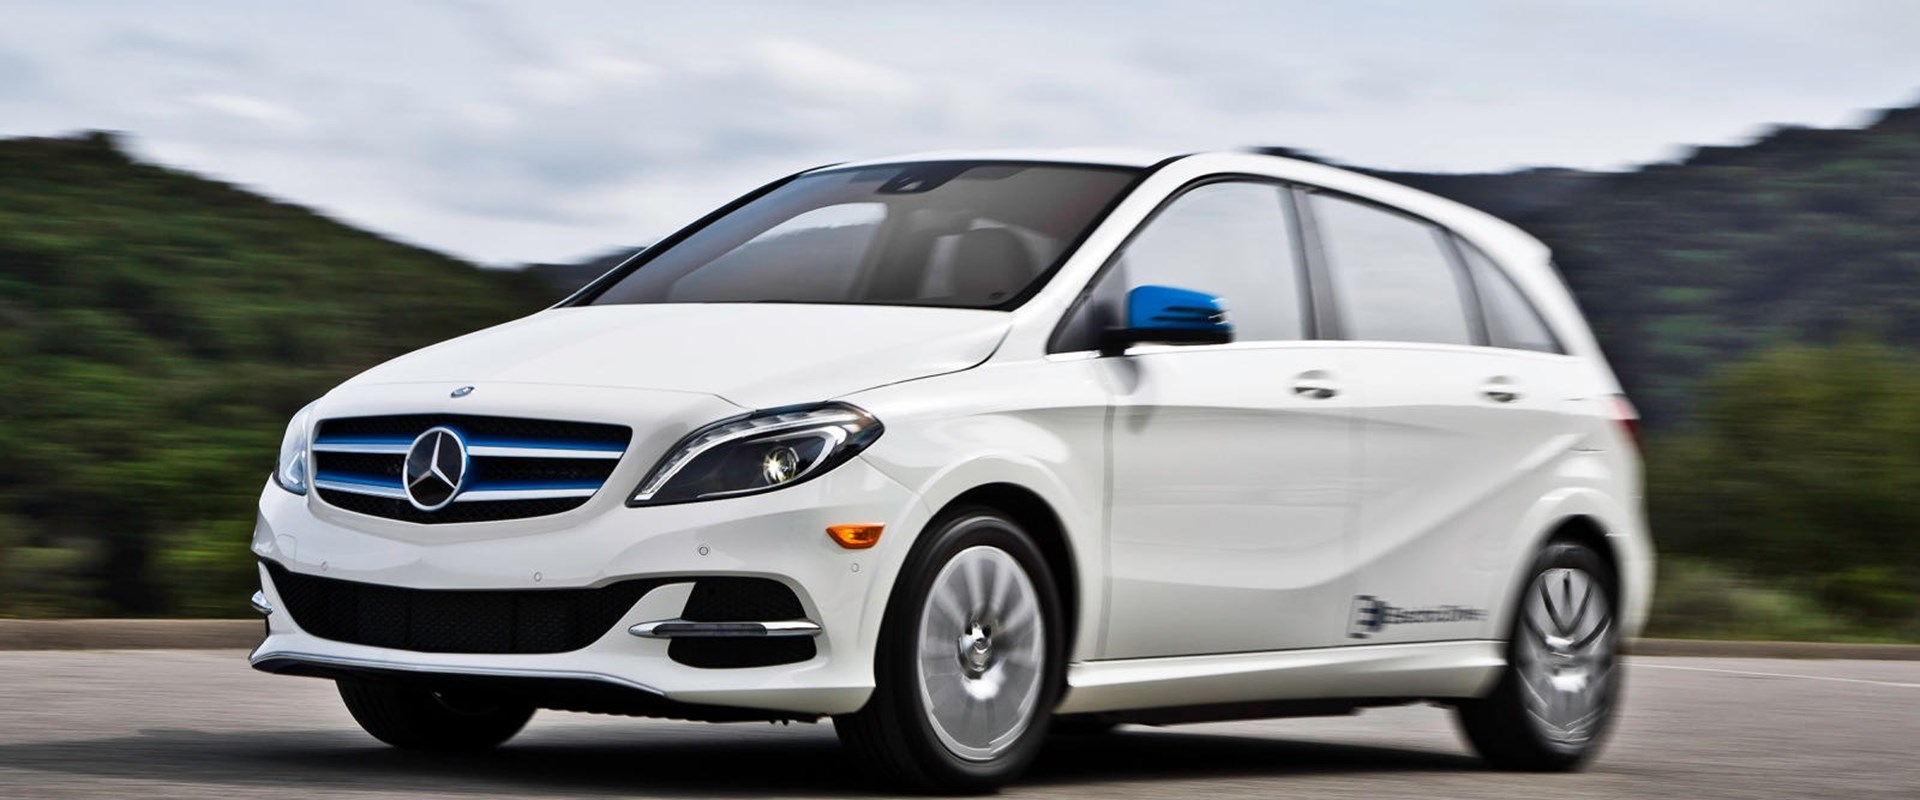 2018 mercedes benz b class electric drive review carbuzz. Black Bedroom Furniture Sets. Home Design Ideas